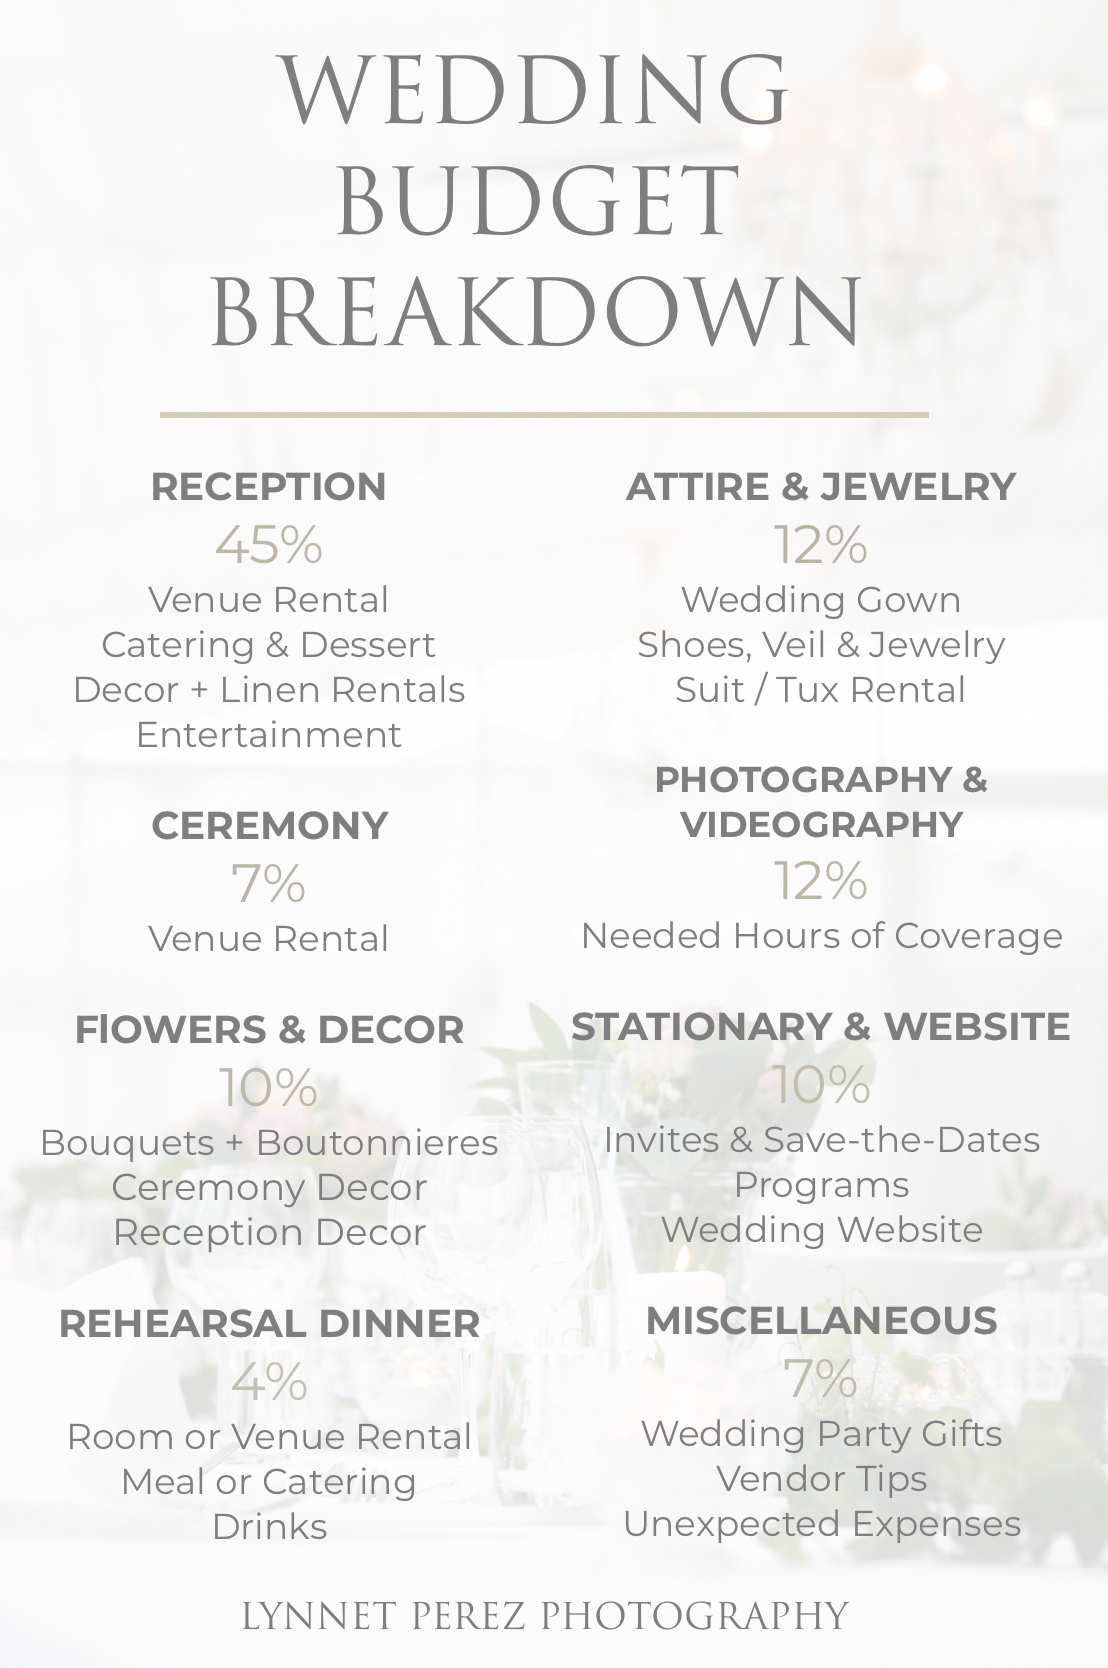 How To Create A Budget For Your Wedding Without Going